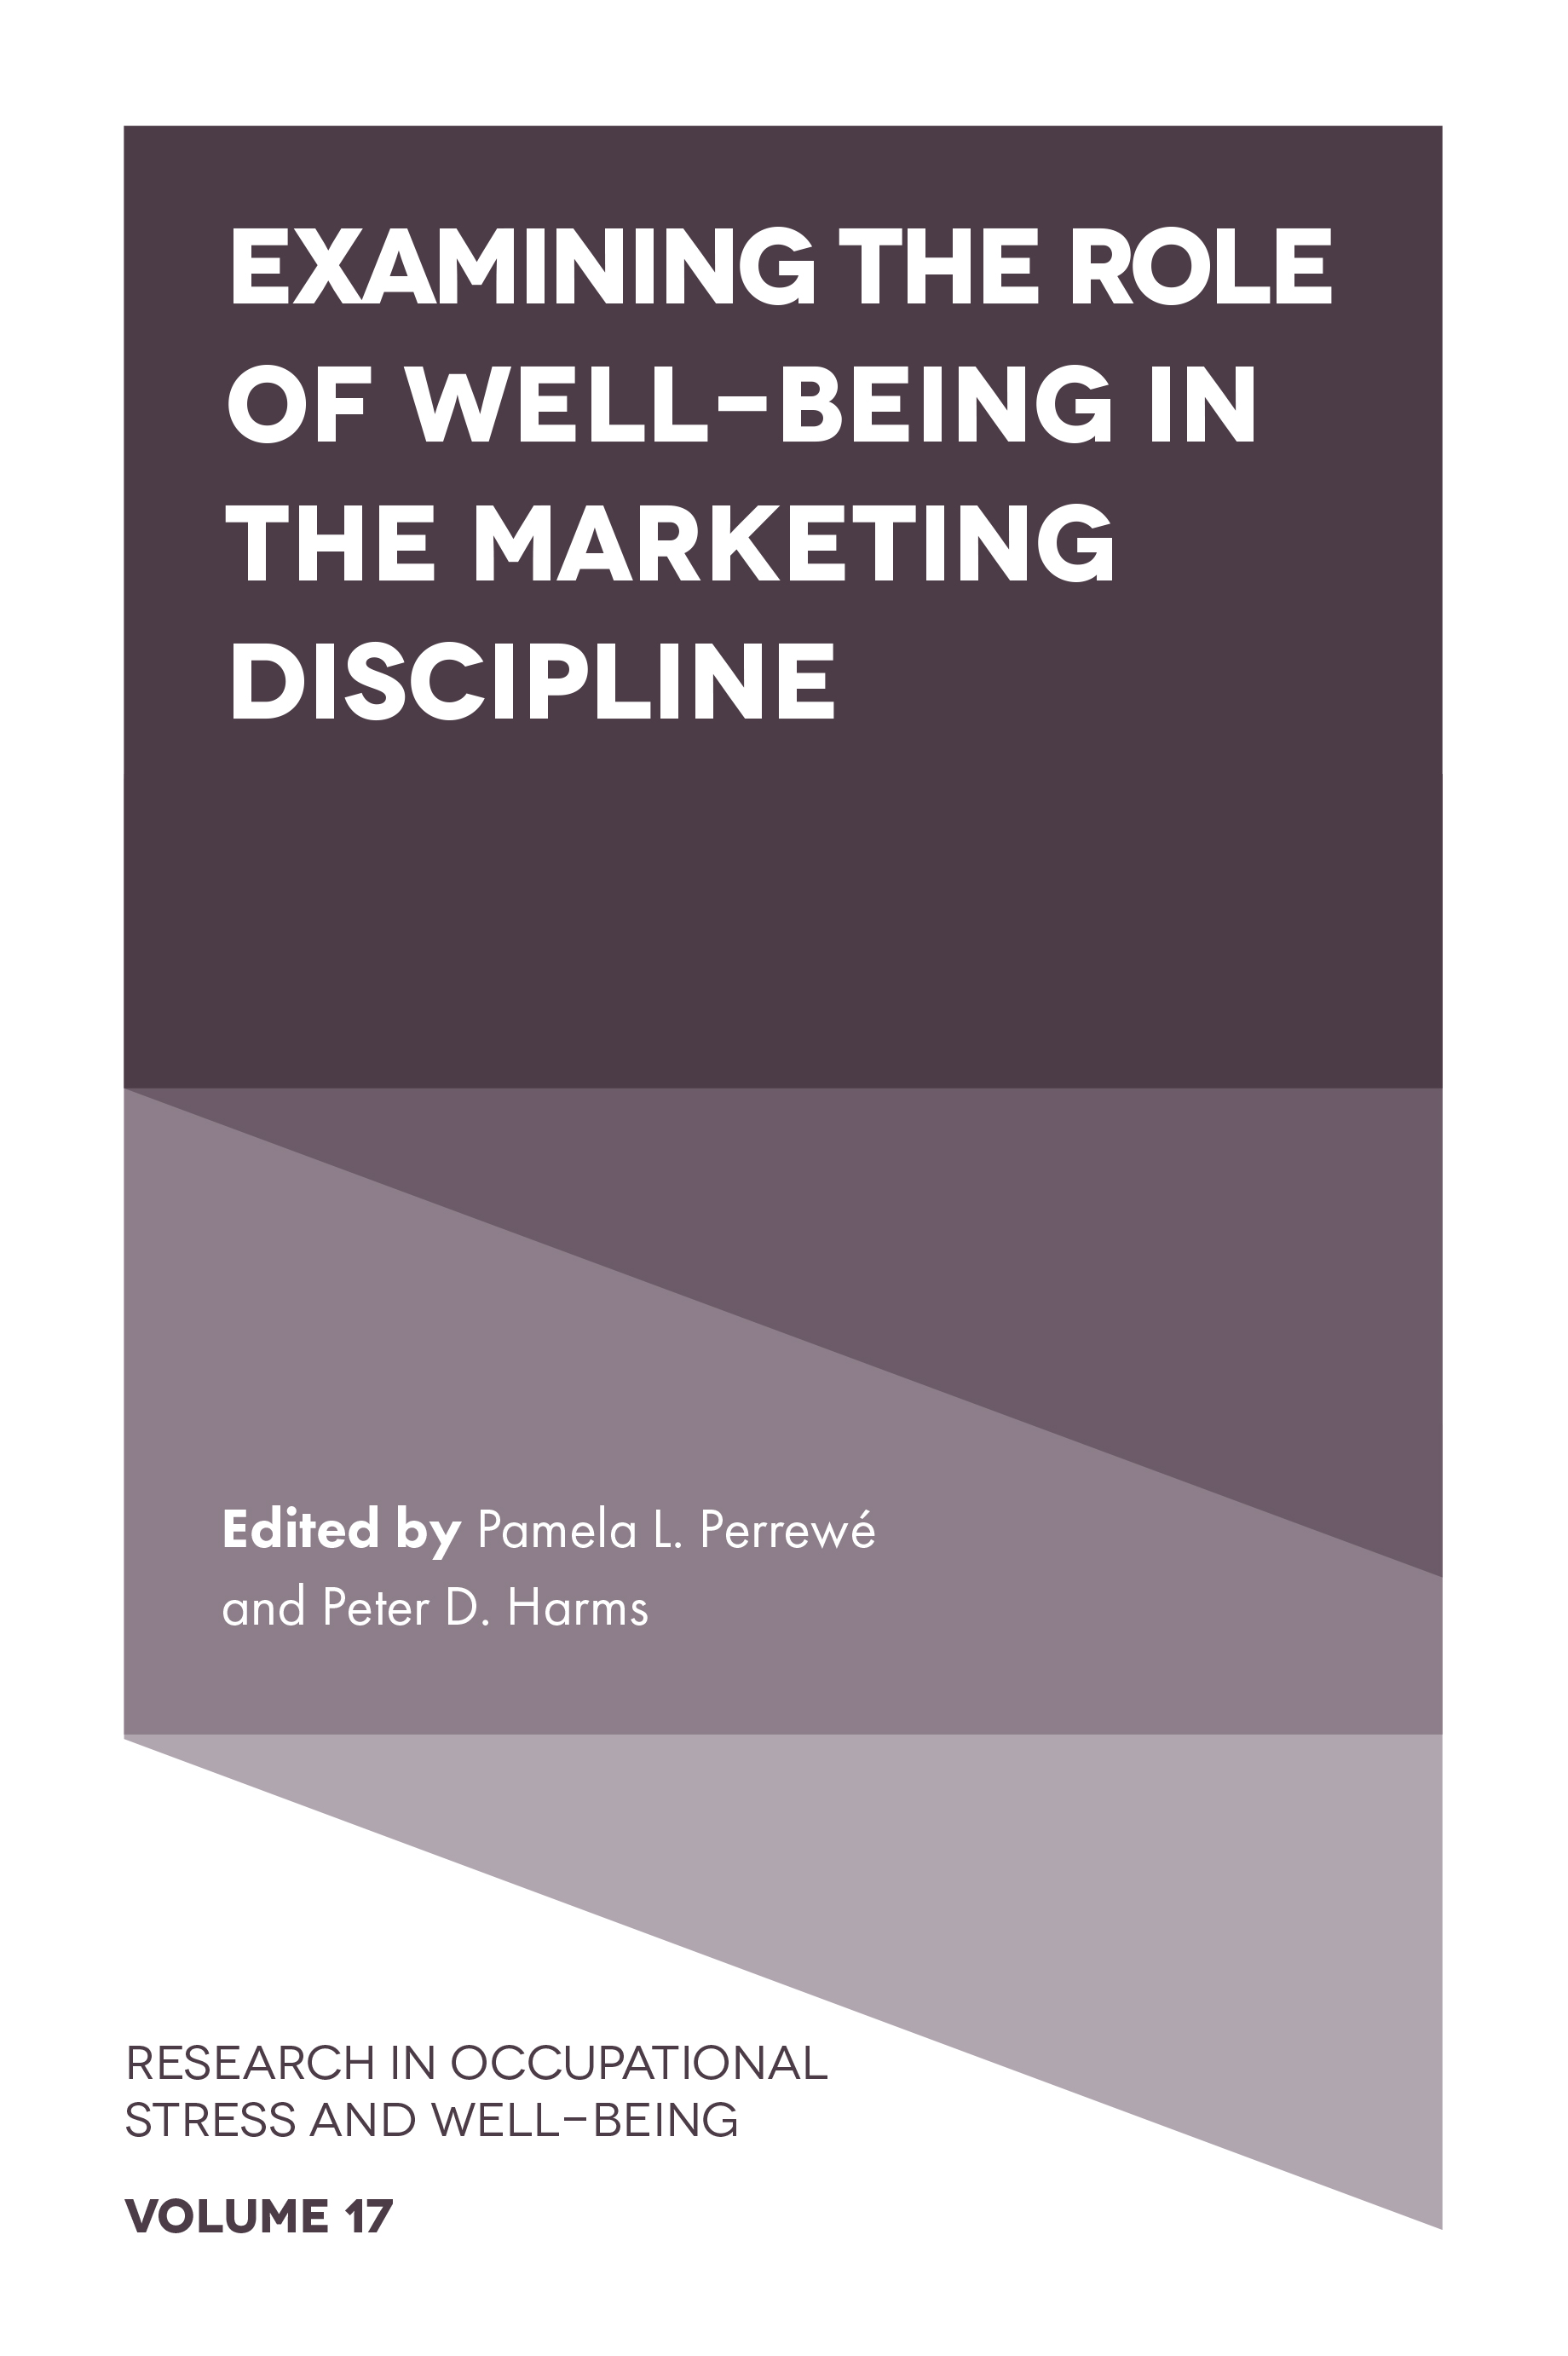 Stress and Well-Being at the Consumer - Employee Interface: Examining the Role of Well-being in the Marketing Discipline